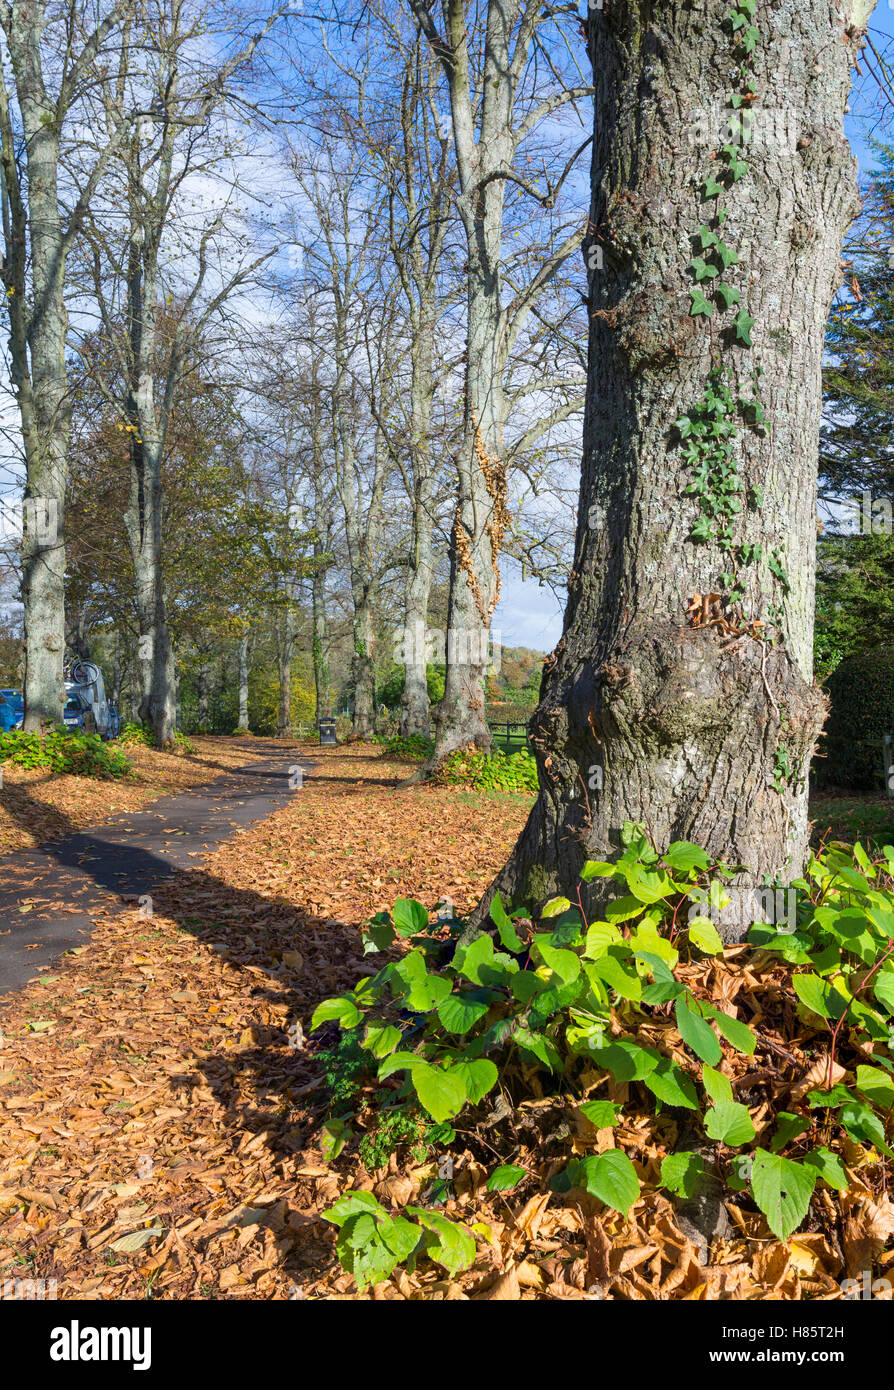 Autumn trees and leaves on the ground in Autumn in Arundel, West Sussex, England, UK. - Stock Image